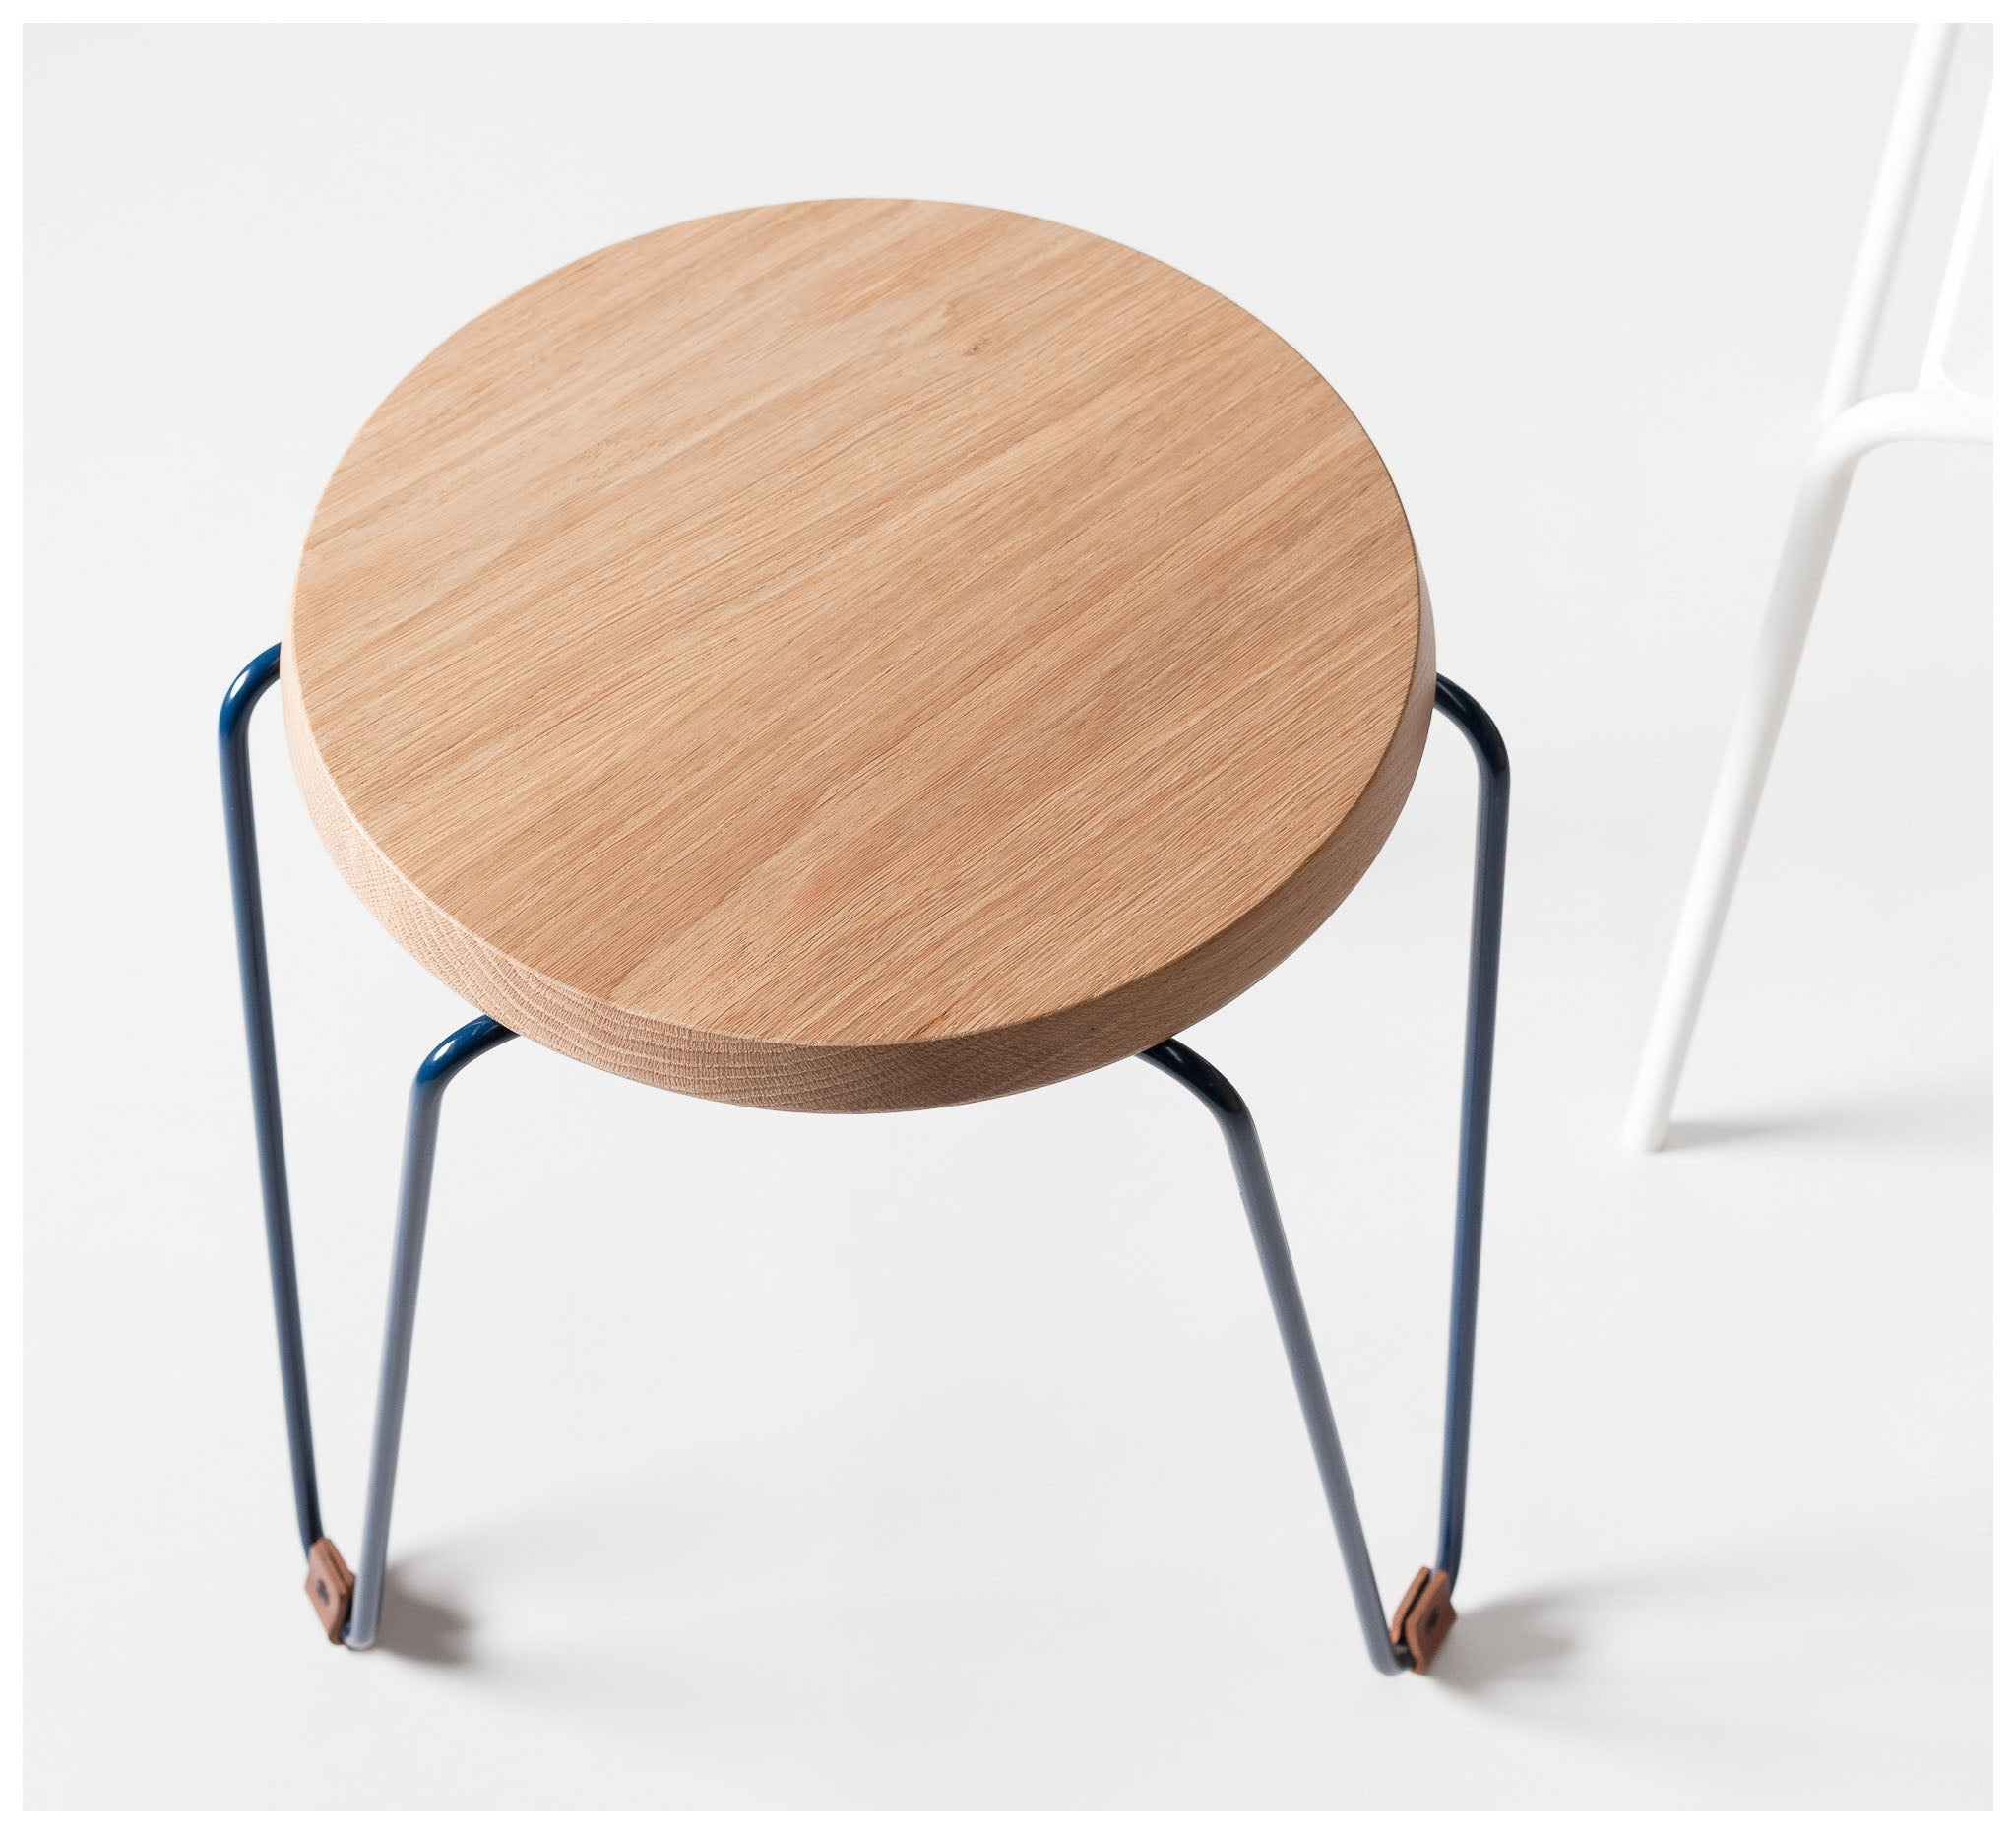 Tuckbox - Klein Lozenge Stool - Navy Mild Steel and Timber